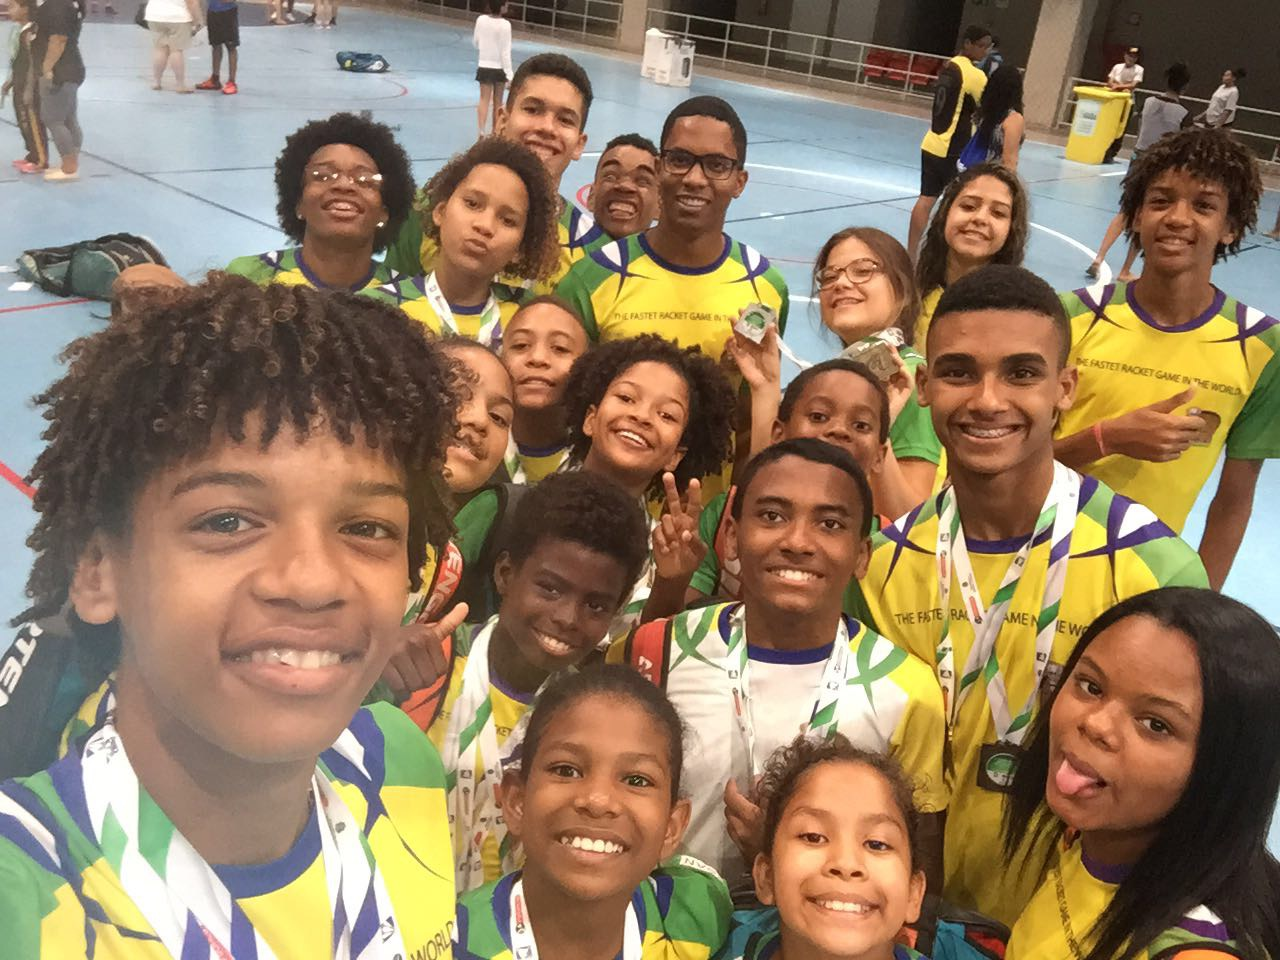 26/11/17: Miratus gets 25 medals and 12 titles at Brazilian Championship !